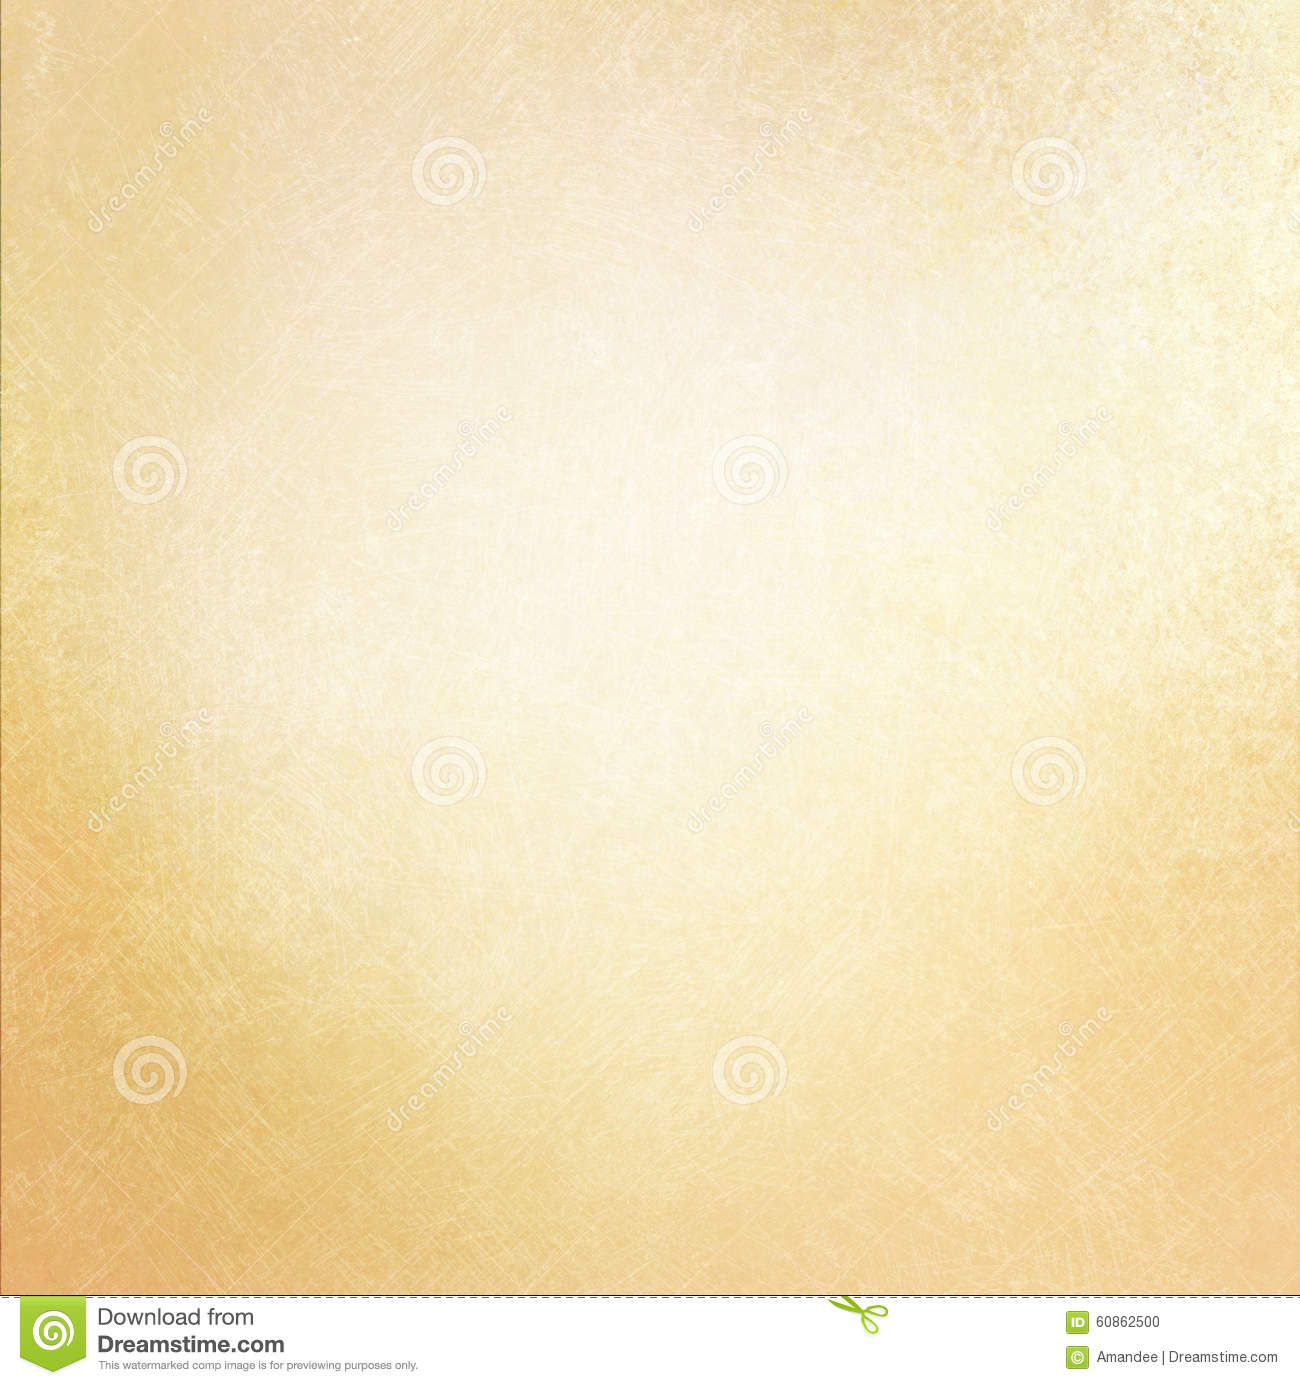 vintage old paper background with soft gold color and